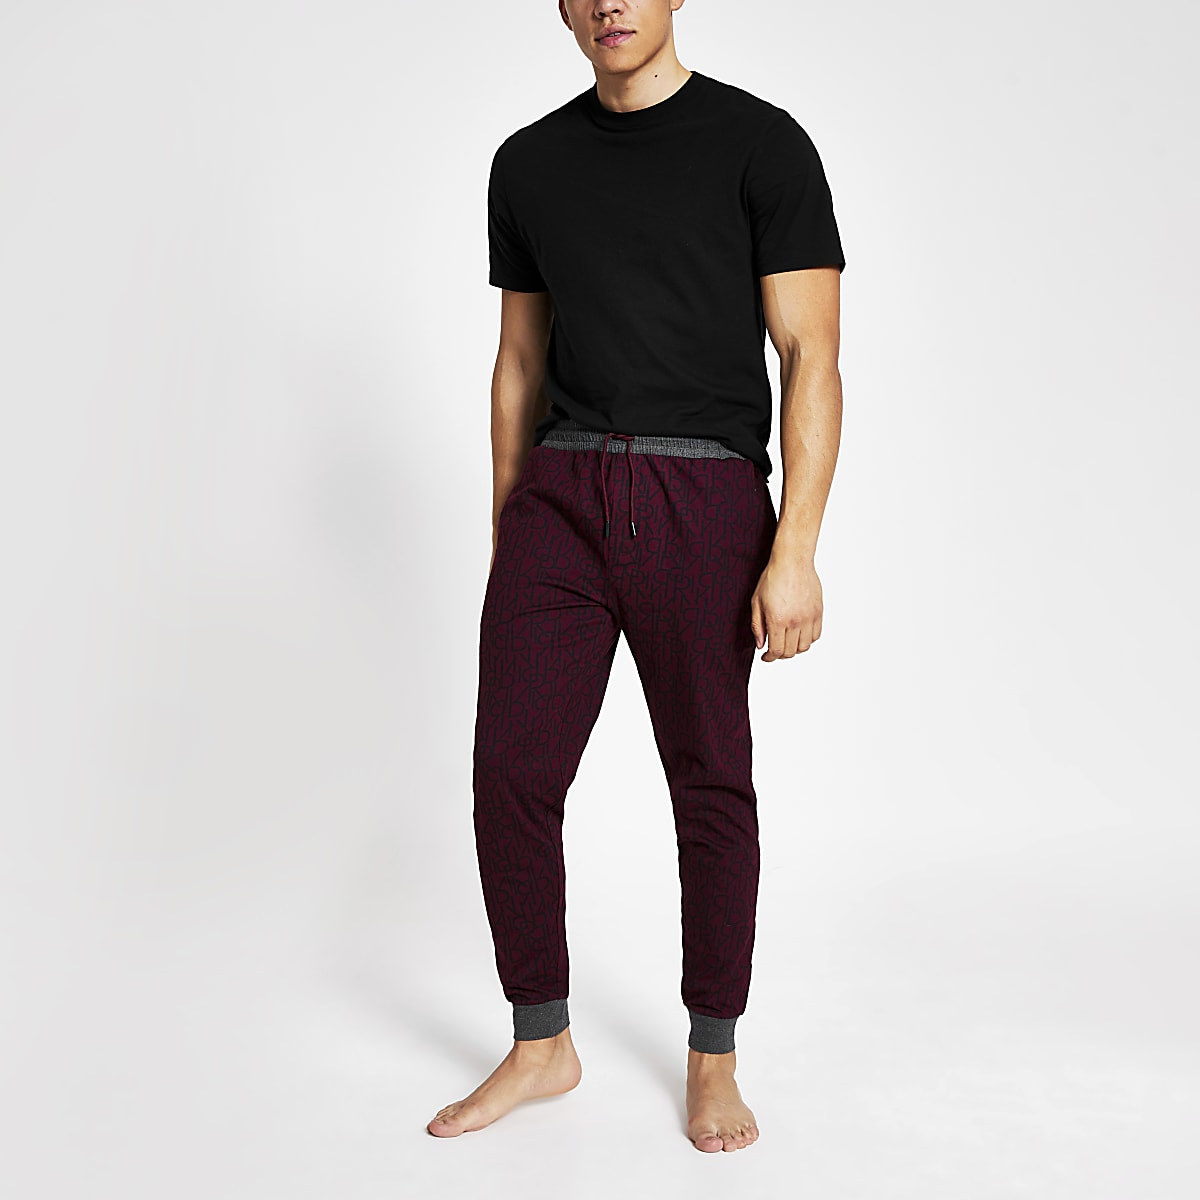 Red RI monogram jogger loungewear 2 pack